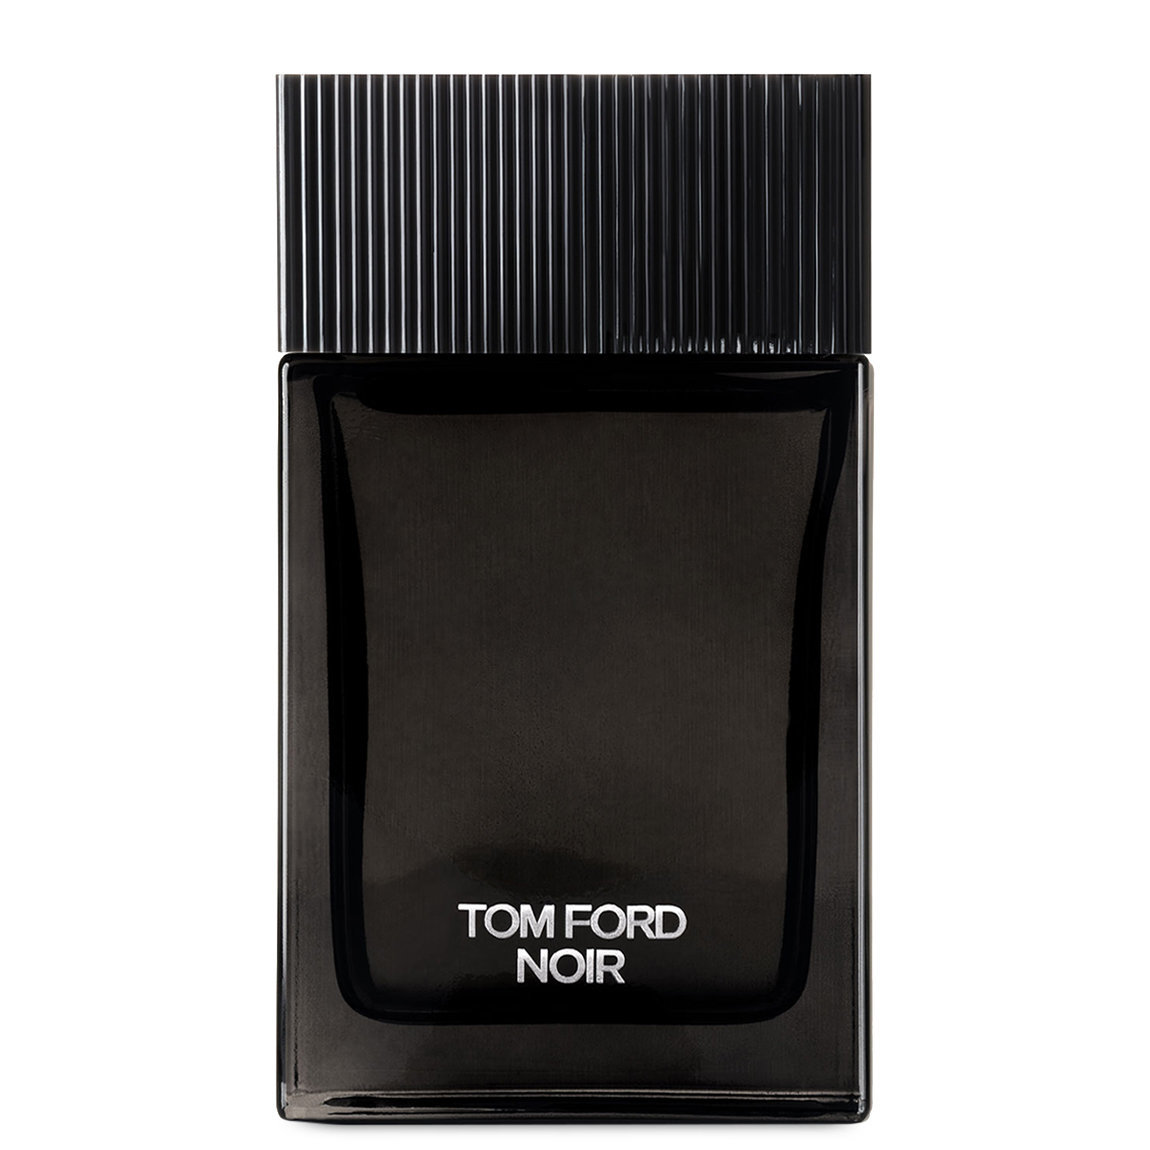 TOM FORD Tom Ford Noir 100 ml alternative view 1 - product swatch.